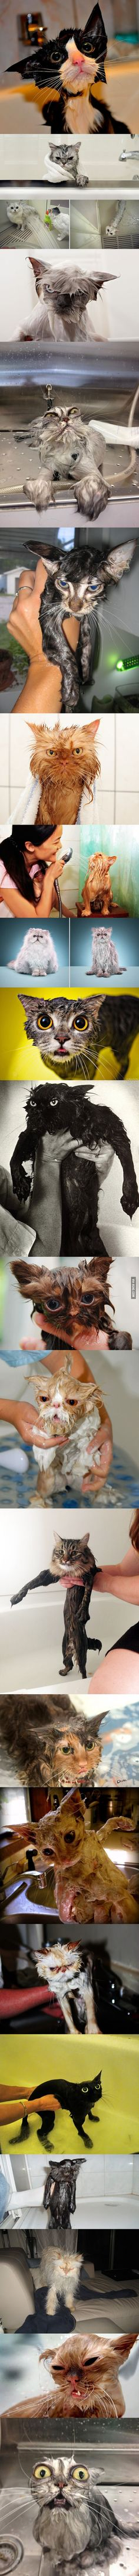 My cat is 21yrs old & can't clean herself like before, (I have to bathe her) - these pics are So Funny